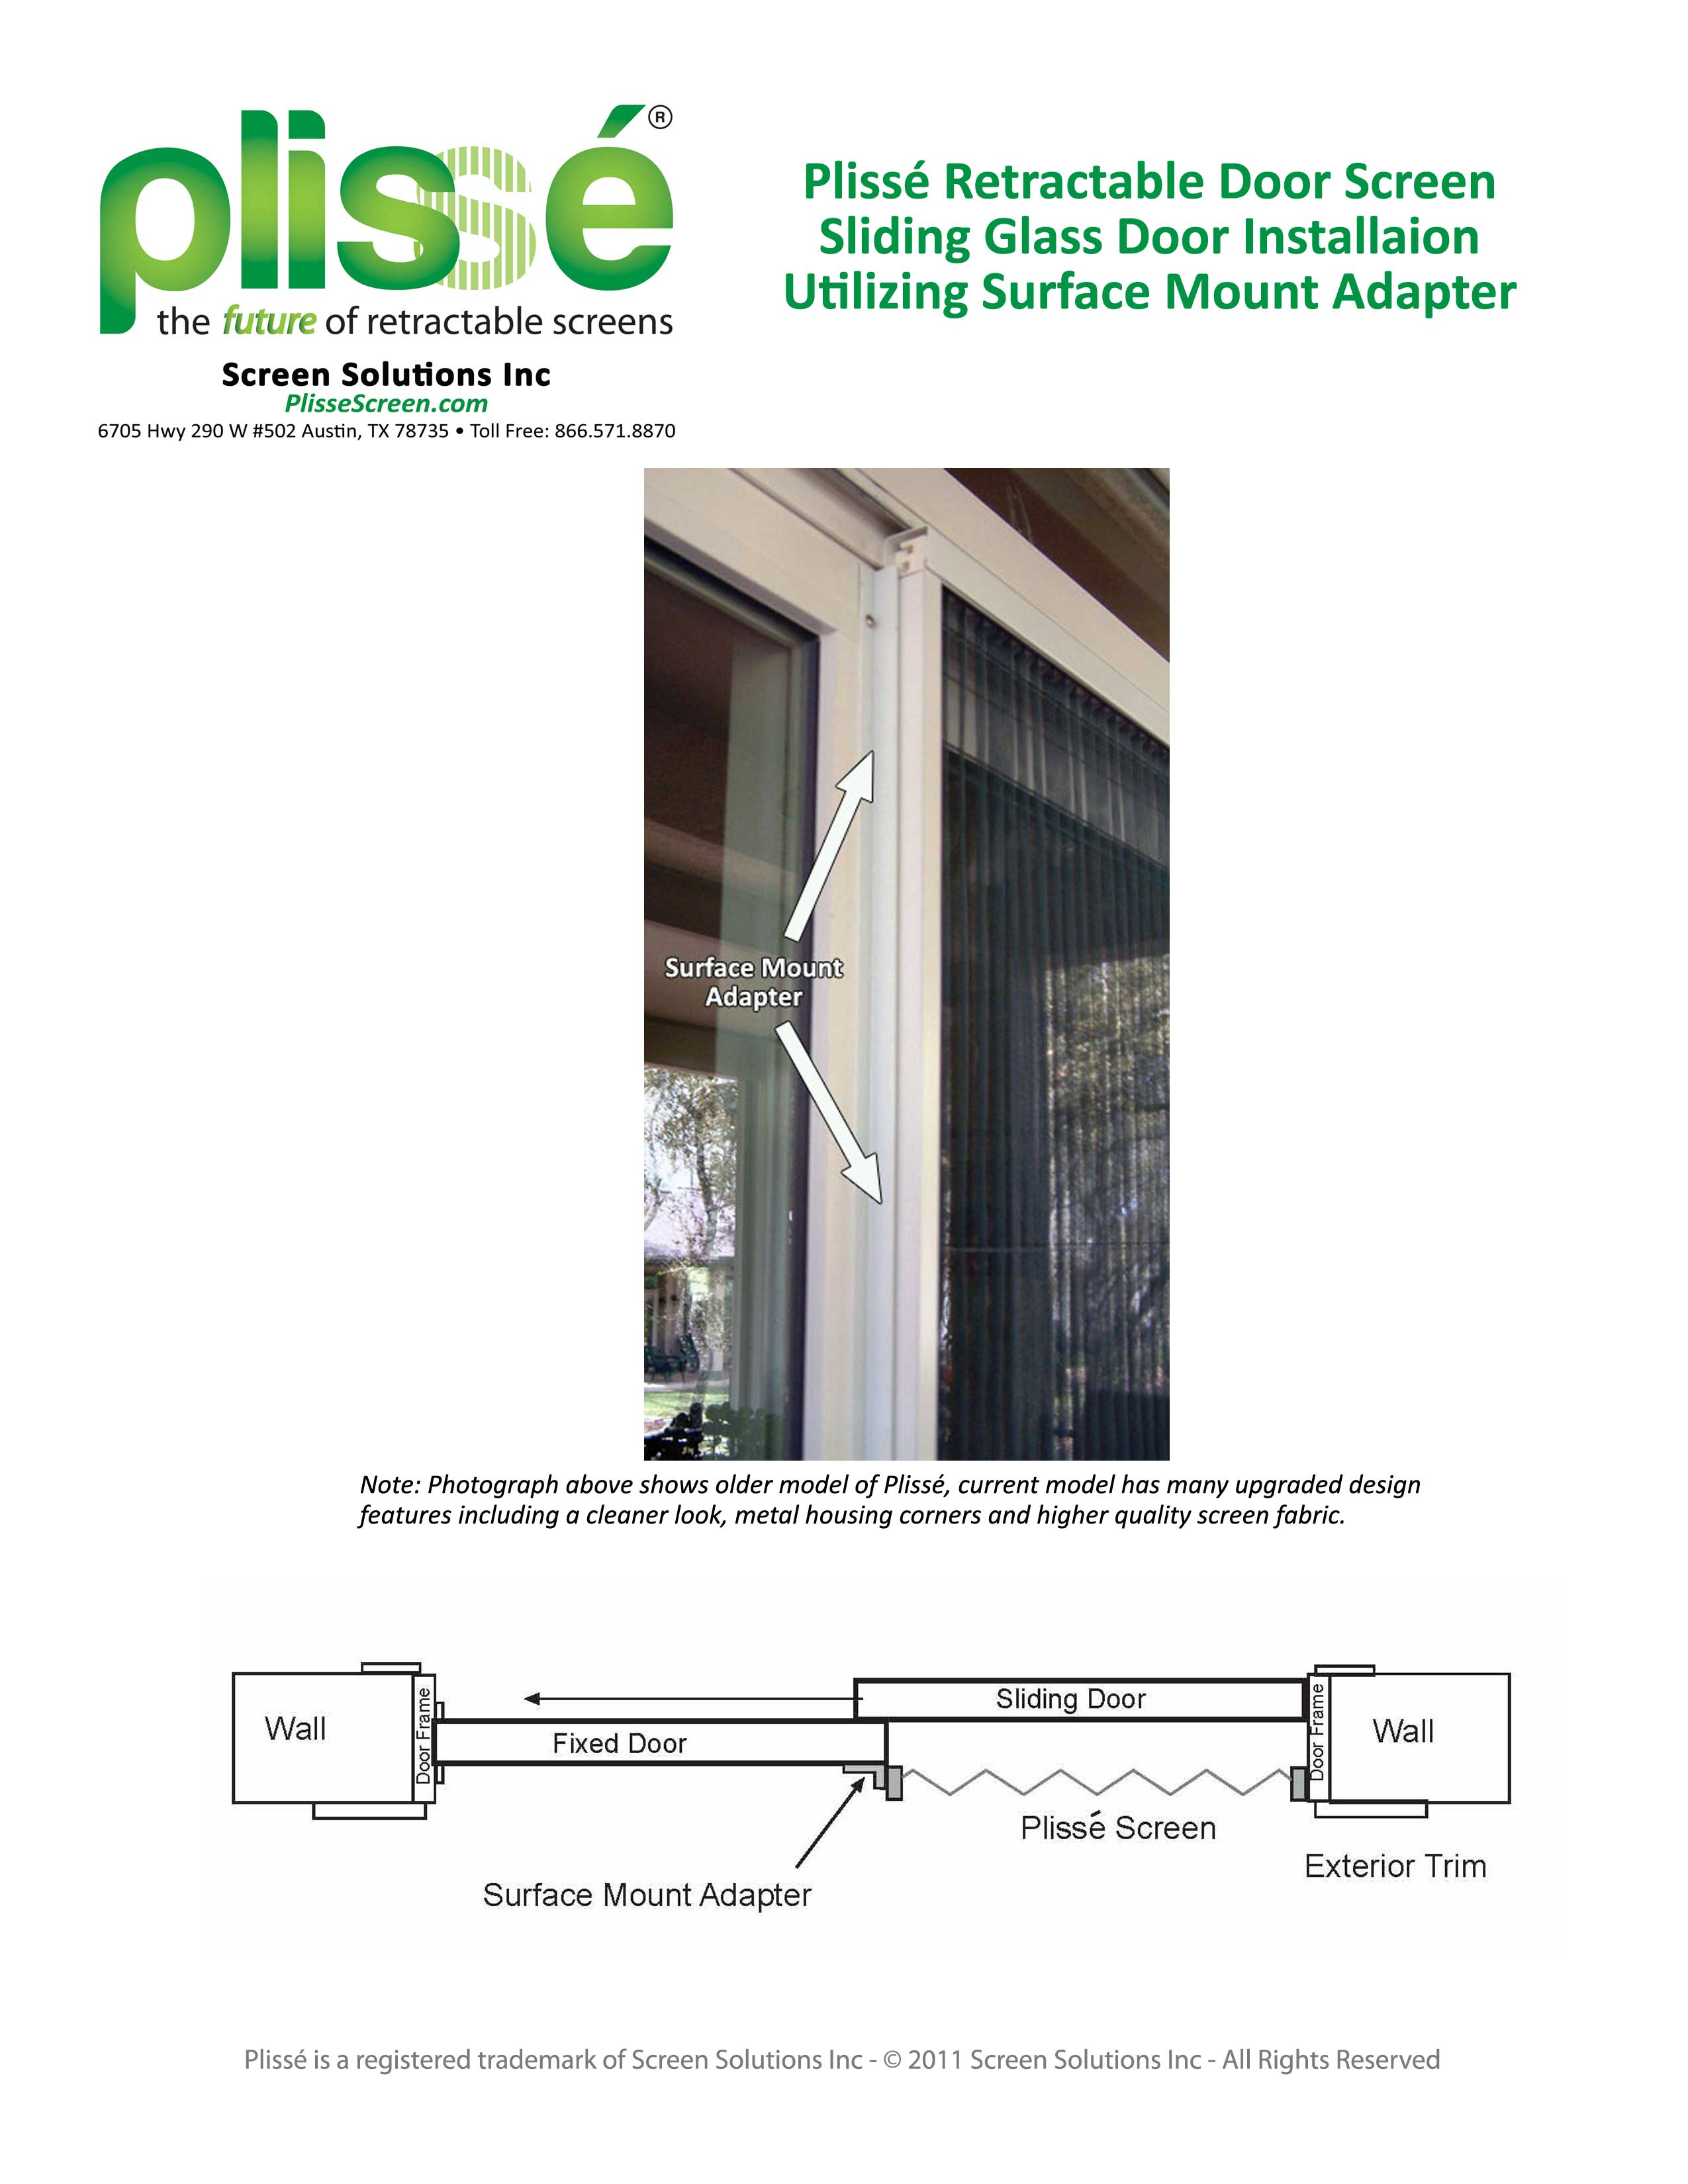 Retractable door screen for sliding glass doors for Retractable screen solutions